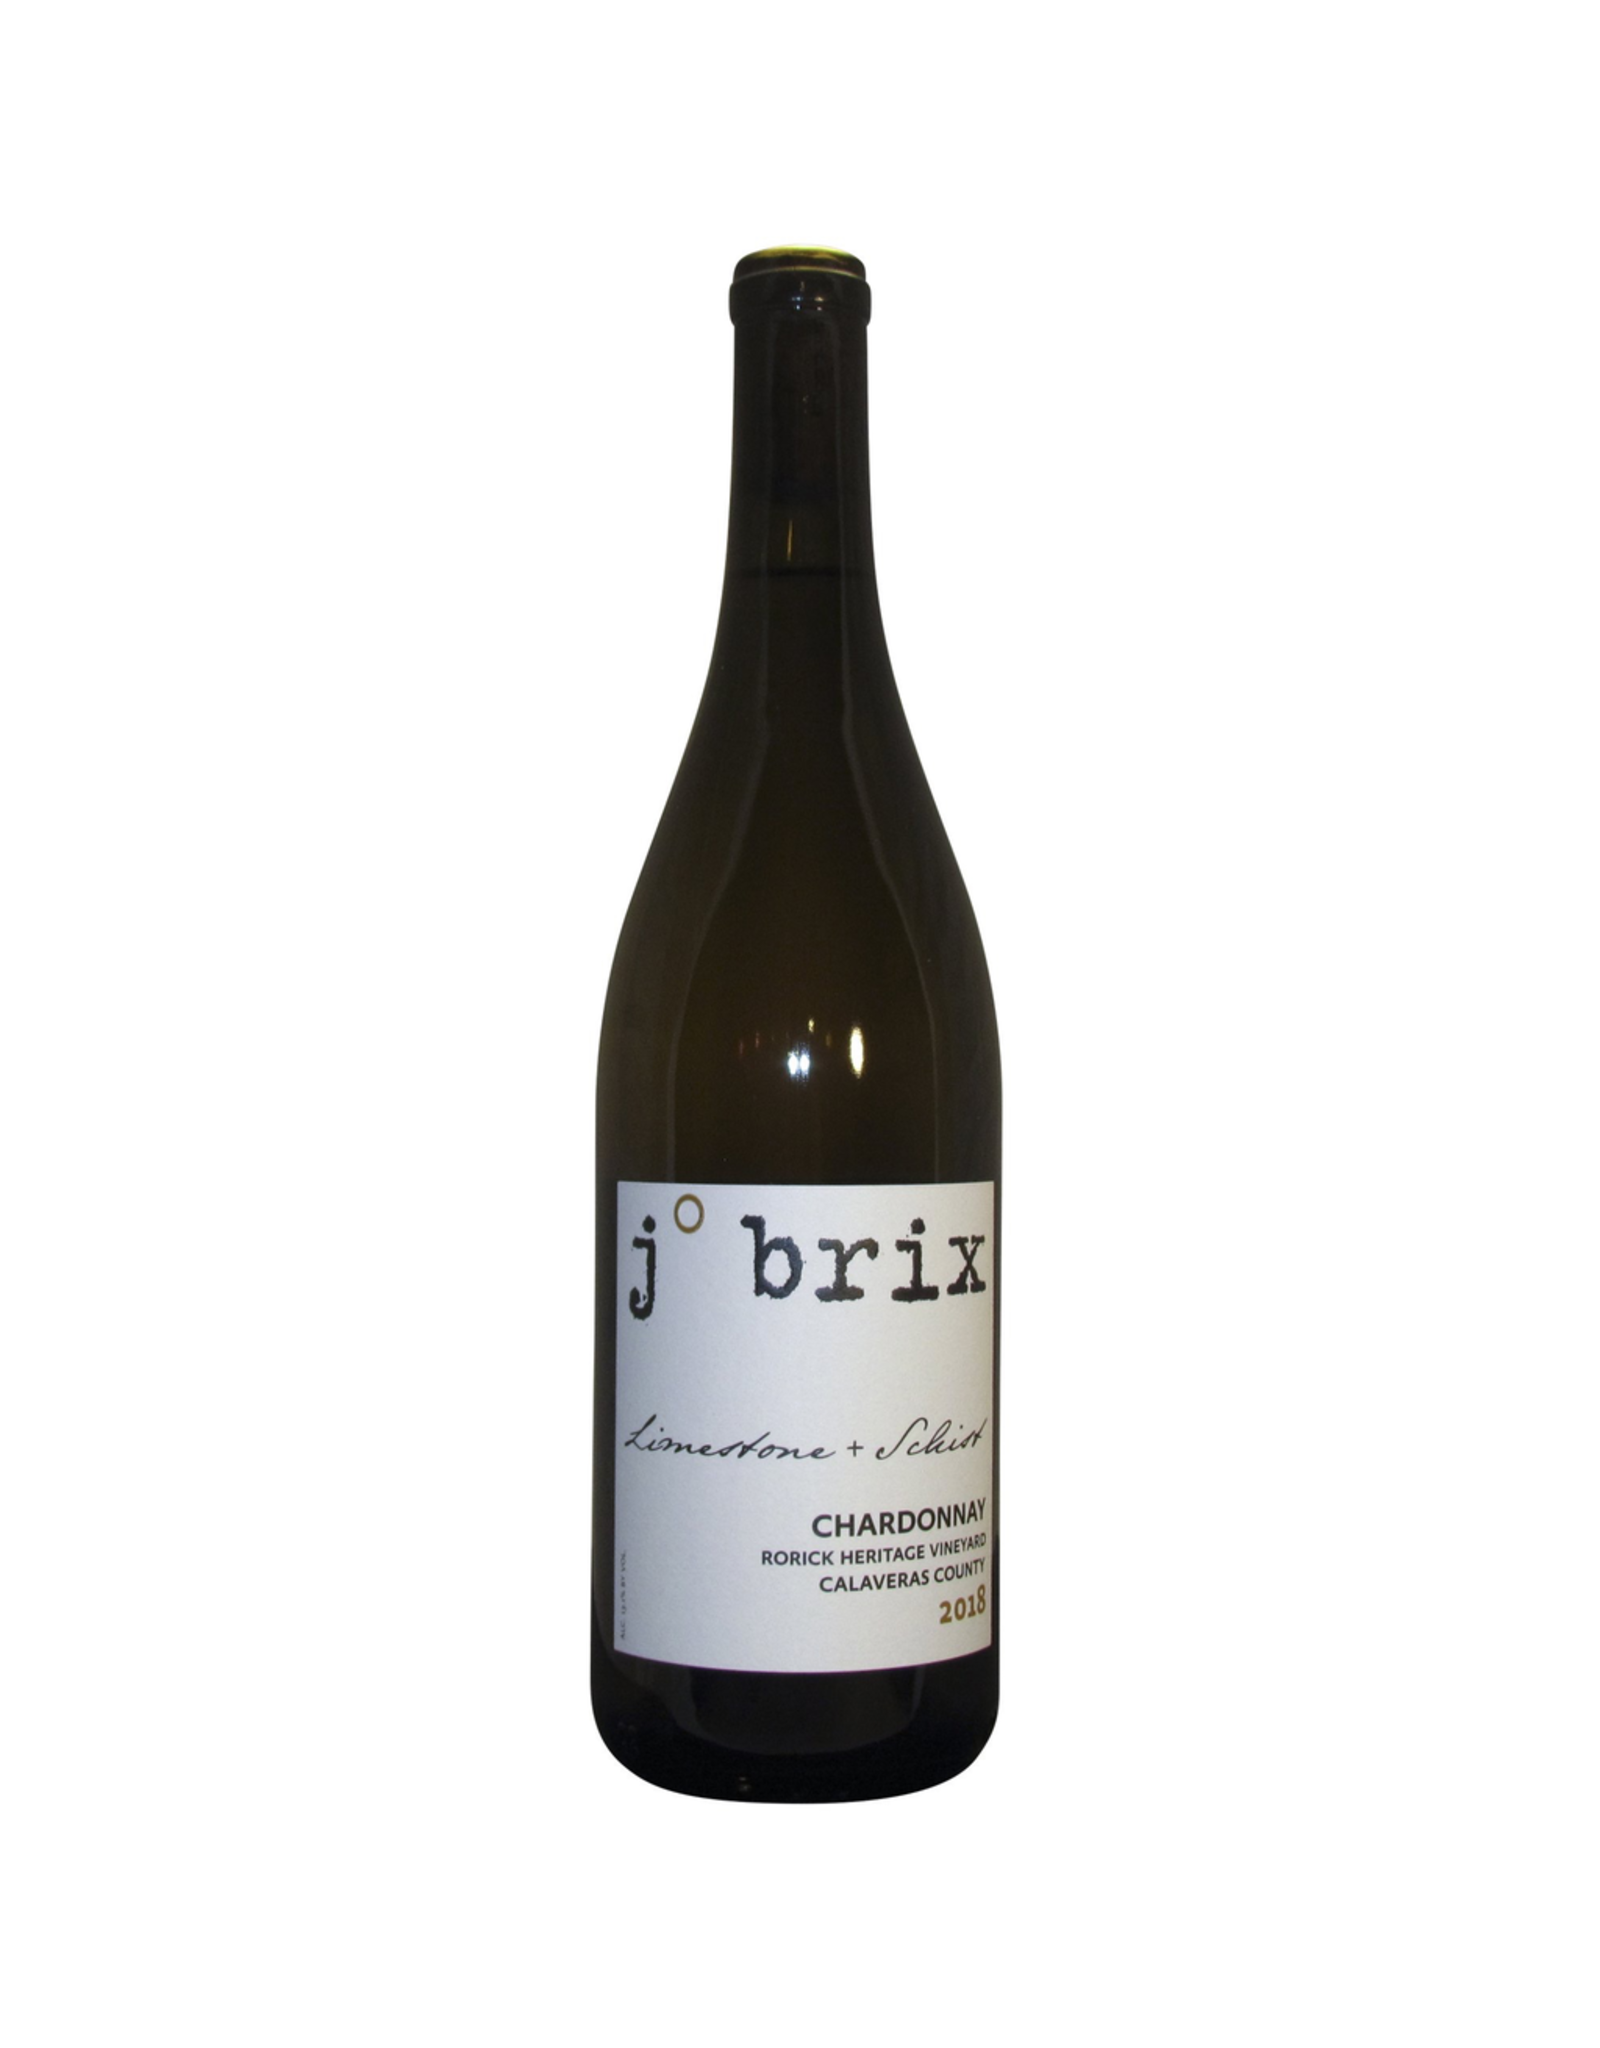 White Wine 2019, J. Brix Limestone + Schist Old Vine Single Vineyard,  Chardonnay, Rock Heritage Vineyard, Calaveras County, California, 13% Alc, CTnr